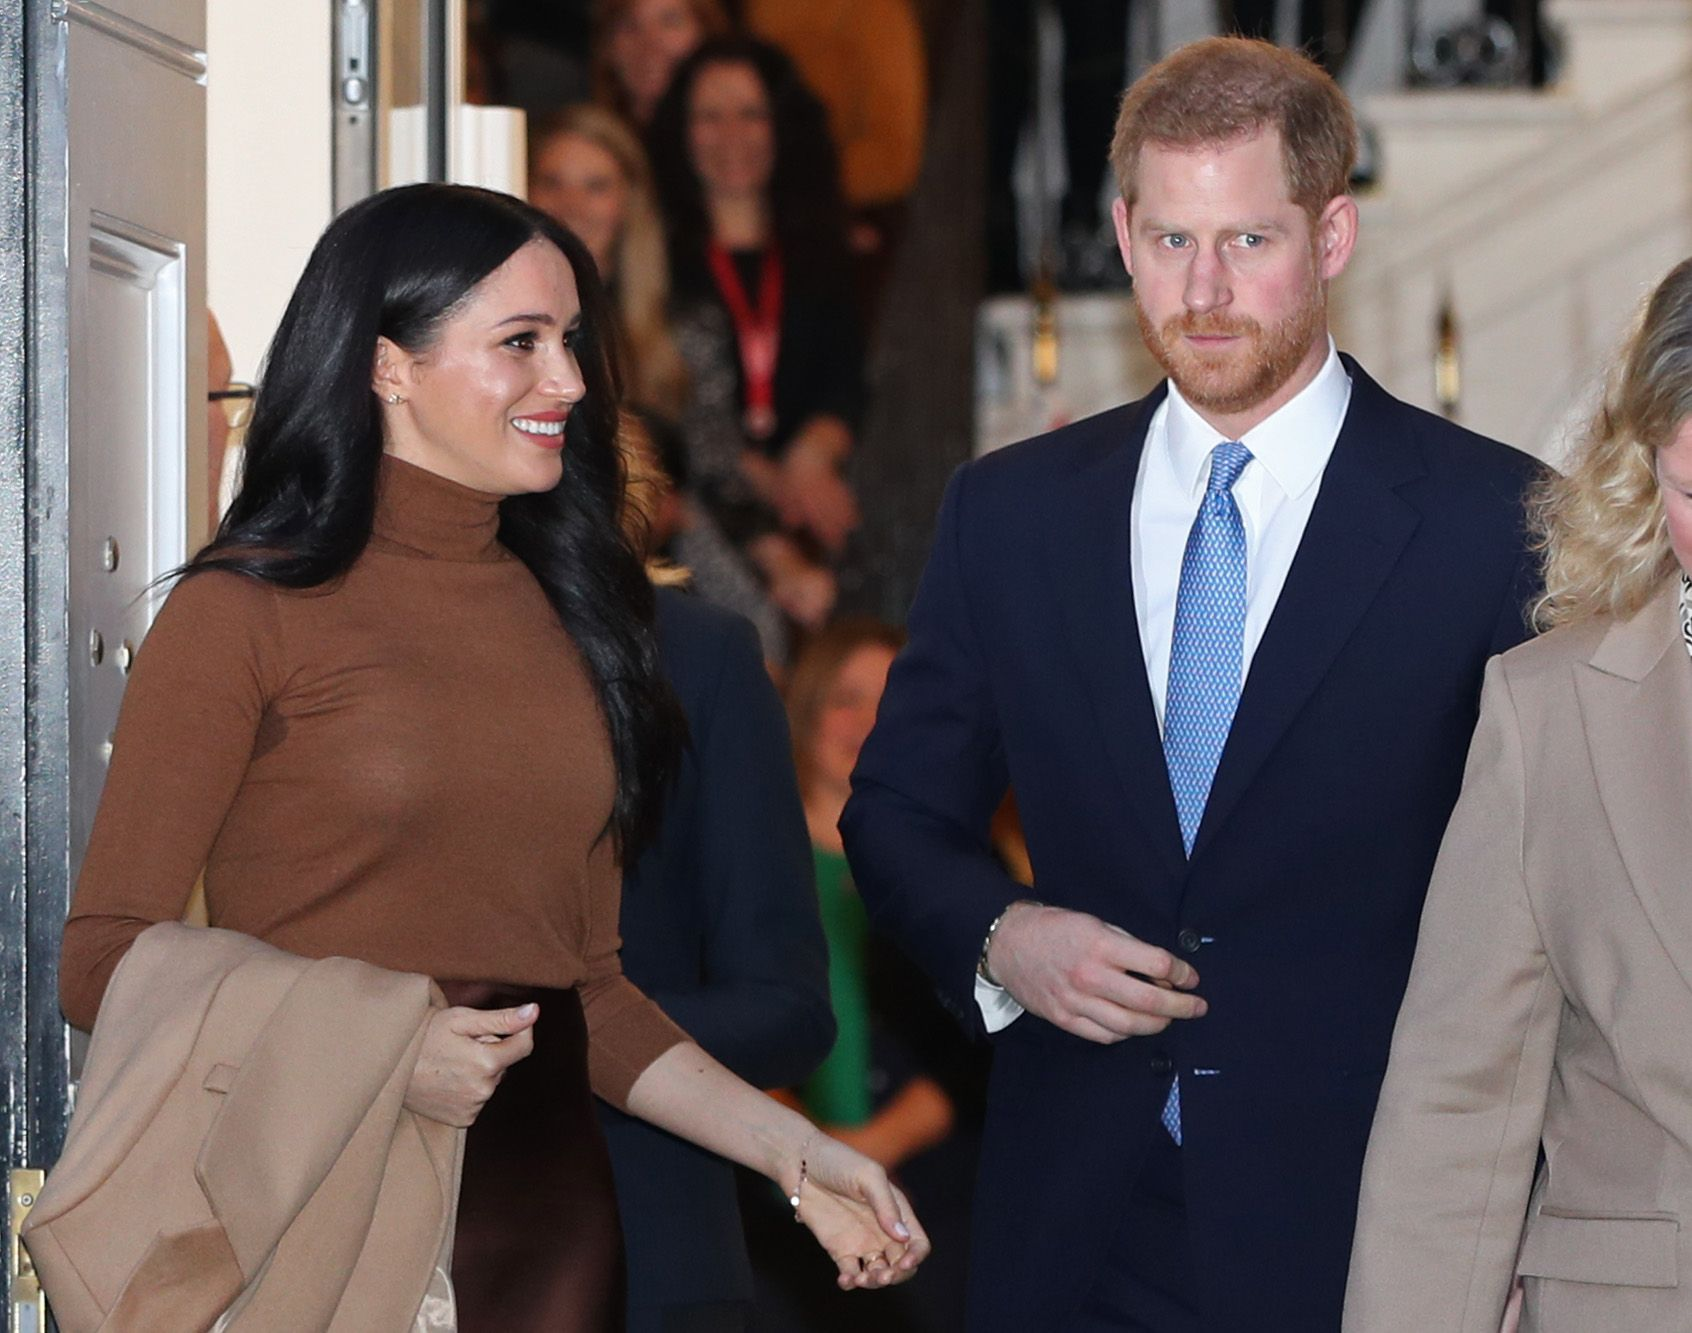 Meghan Markle and Prince Harry visit Canada House, central London on January 7, 2020 | Getty Images